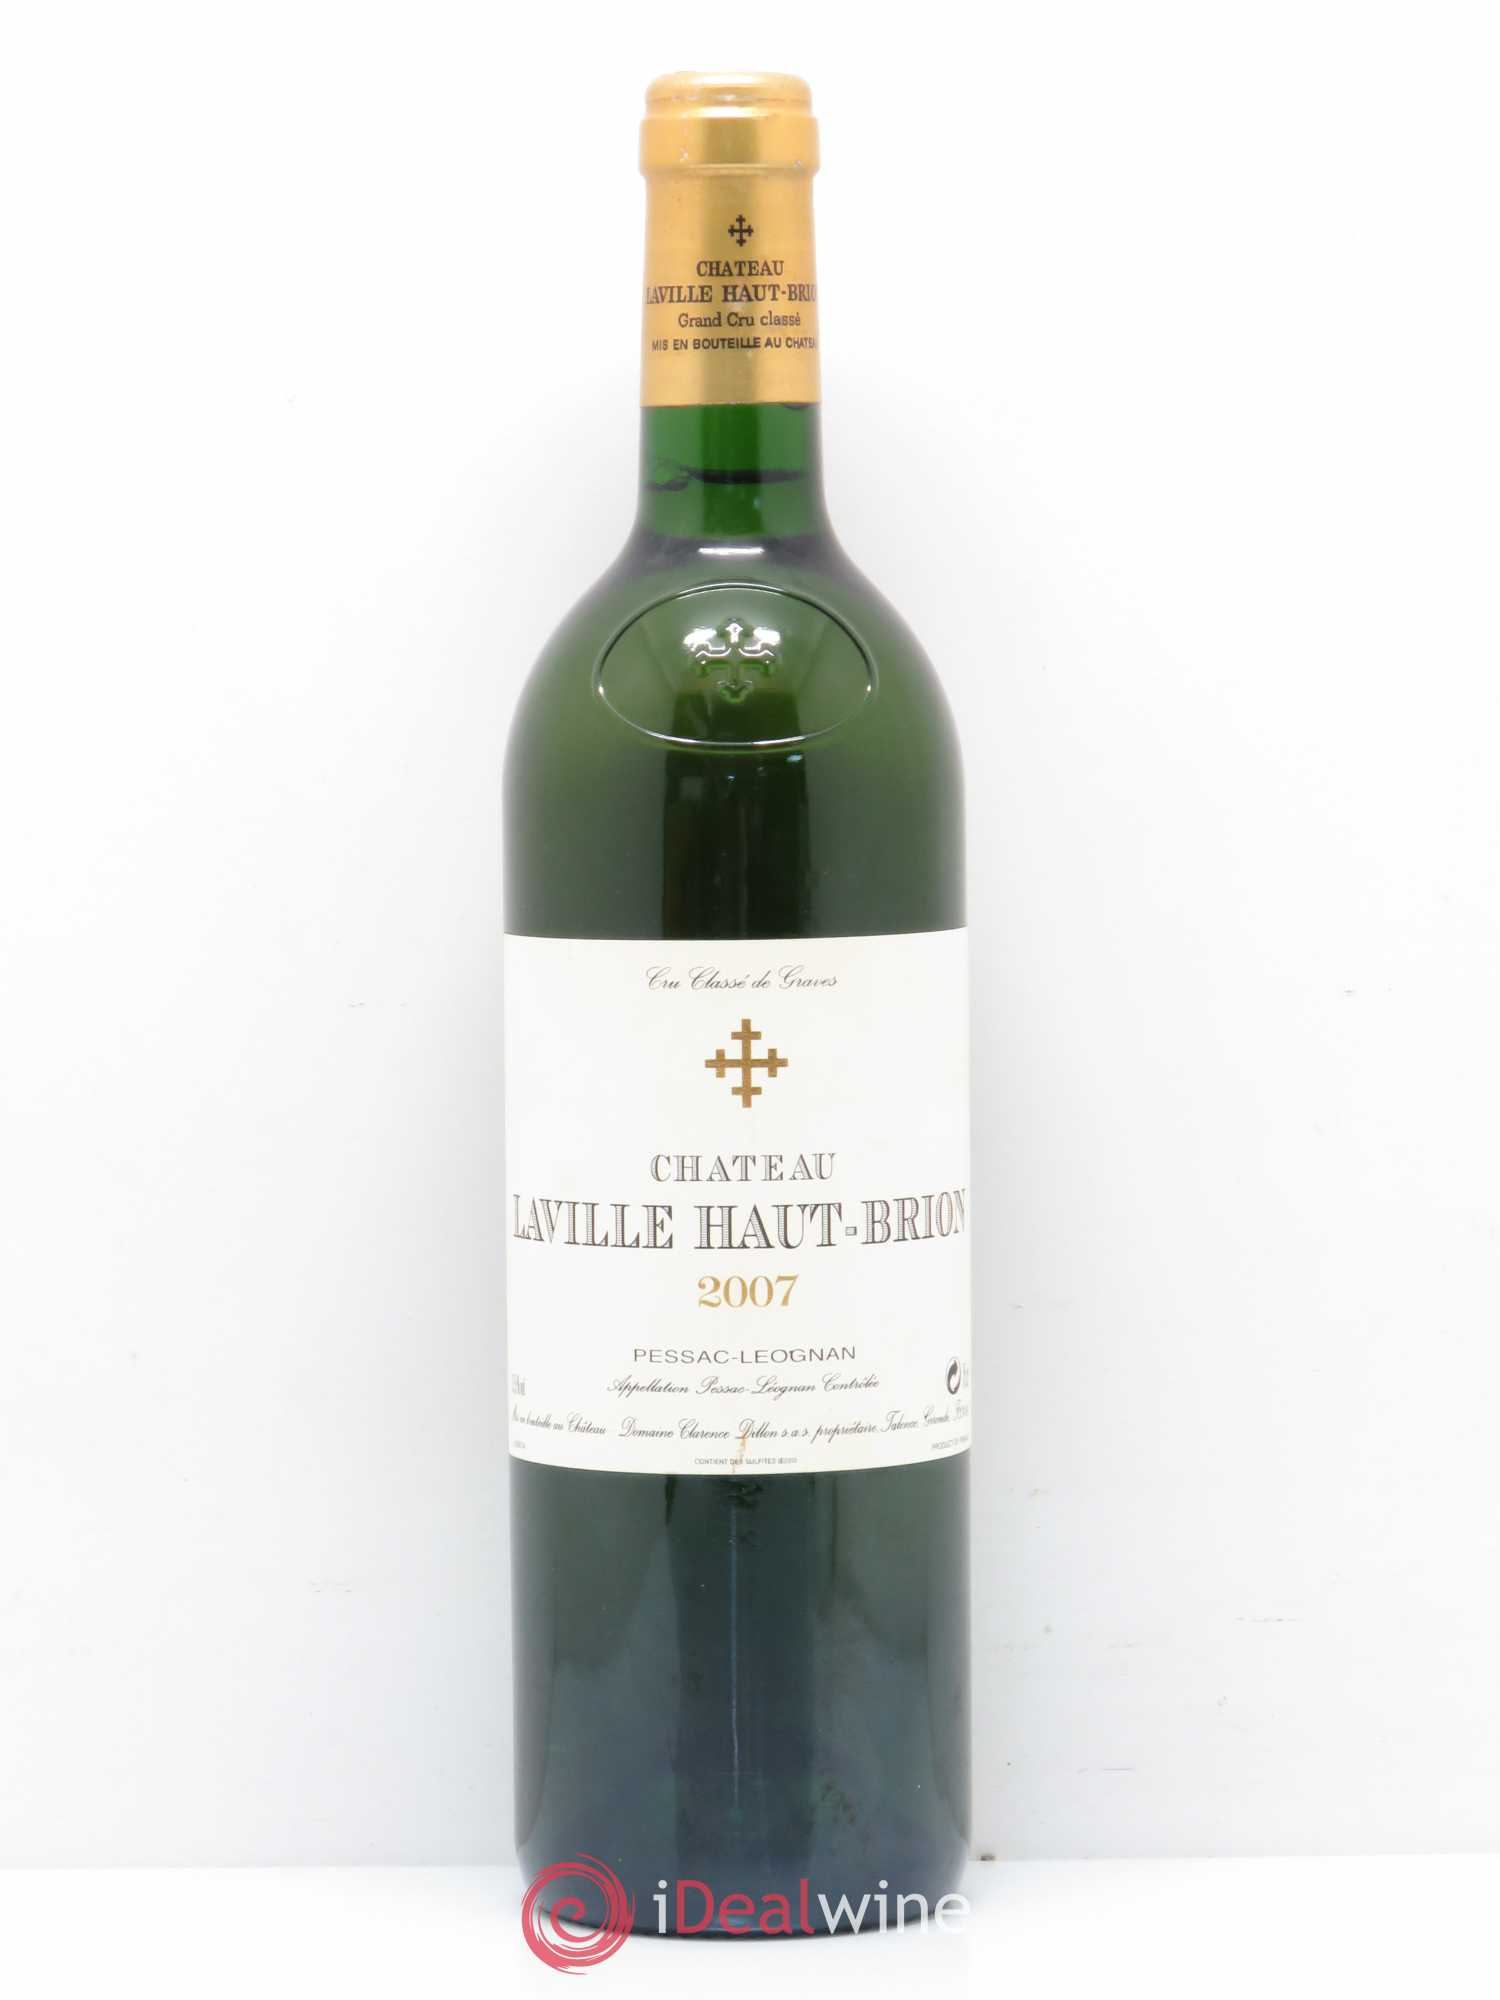 Château Laville Haut-Brion Cru Classé de Graves  2007 - Lot of 1 Bottle